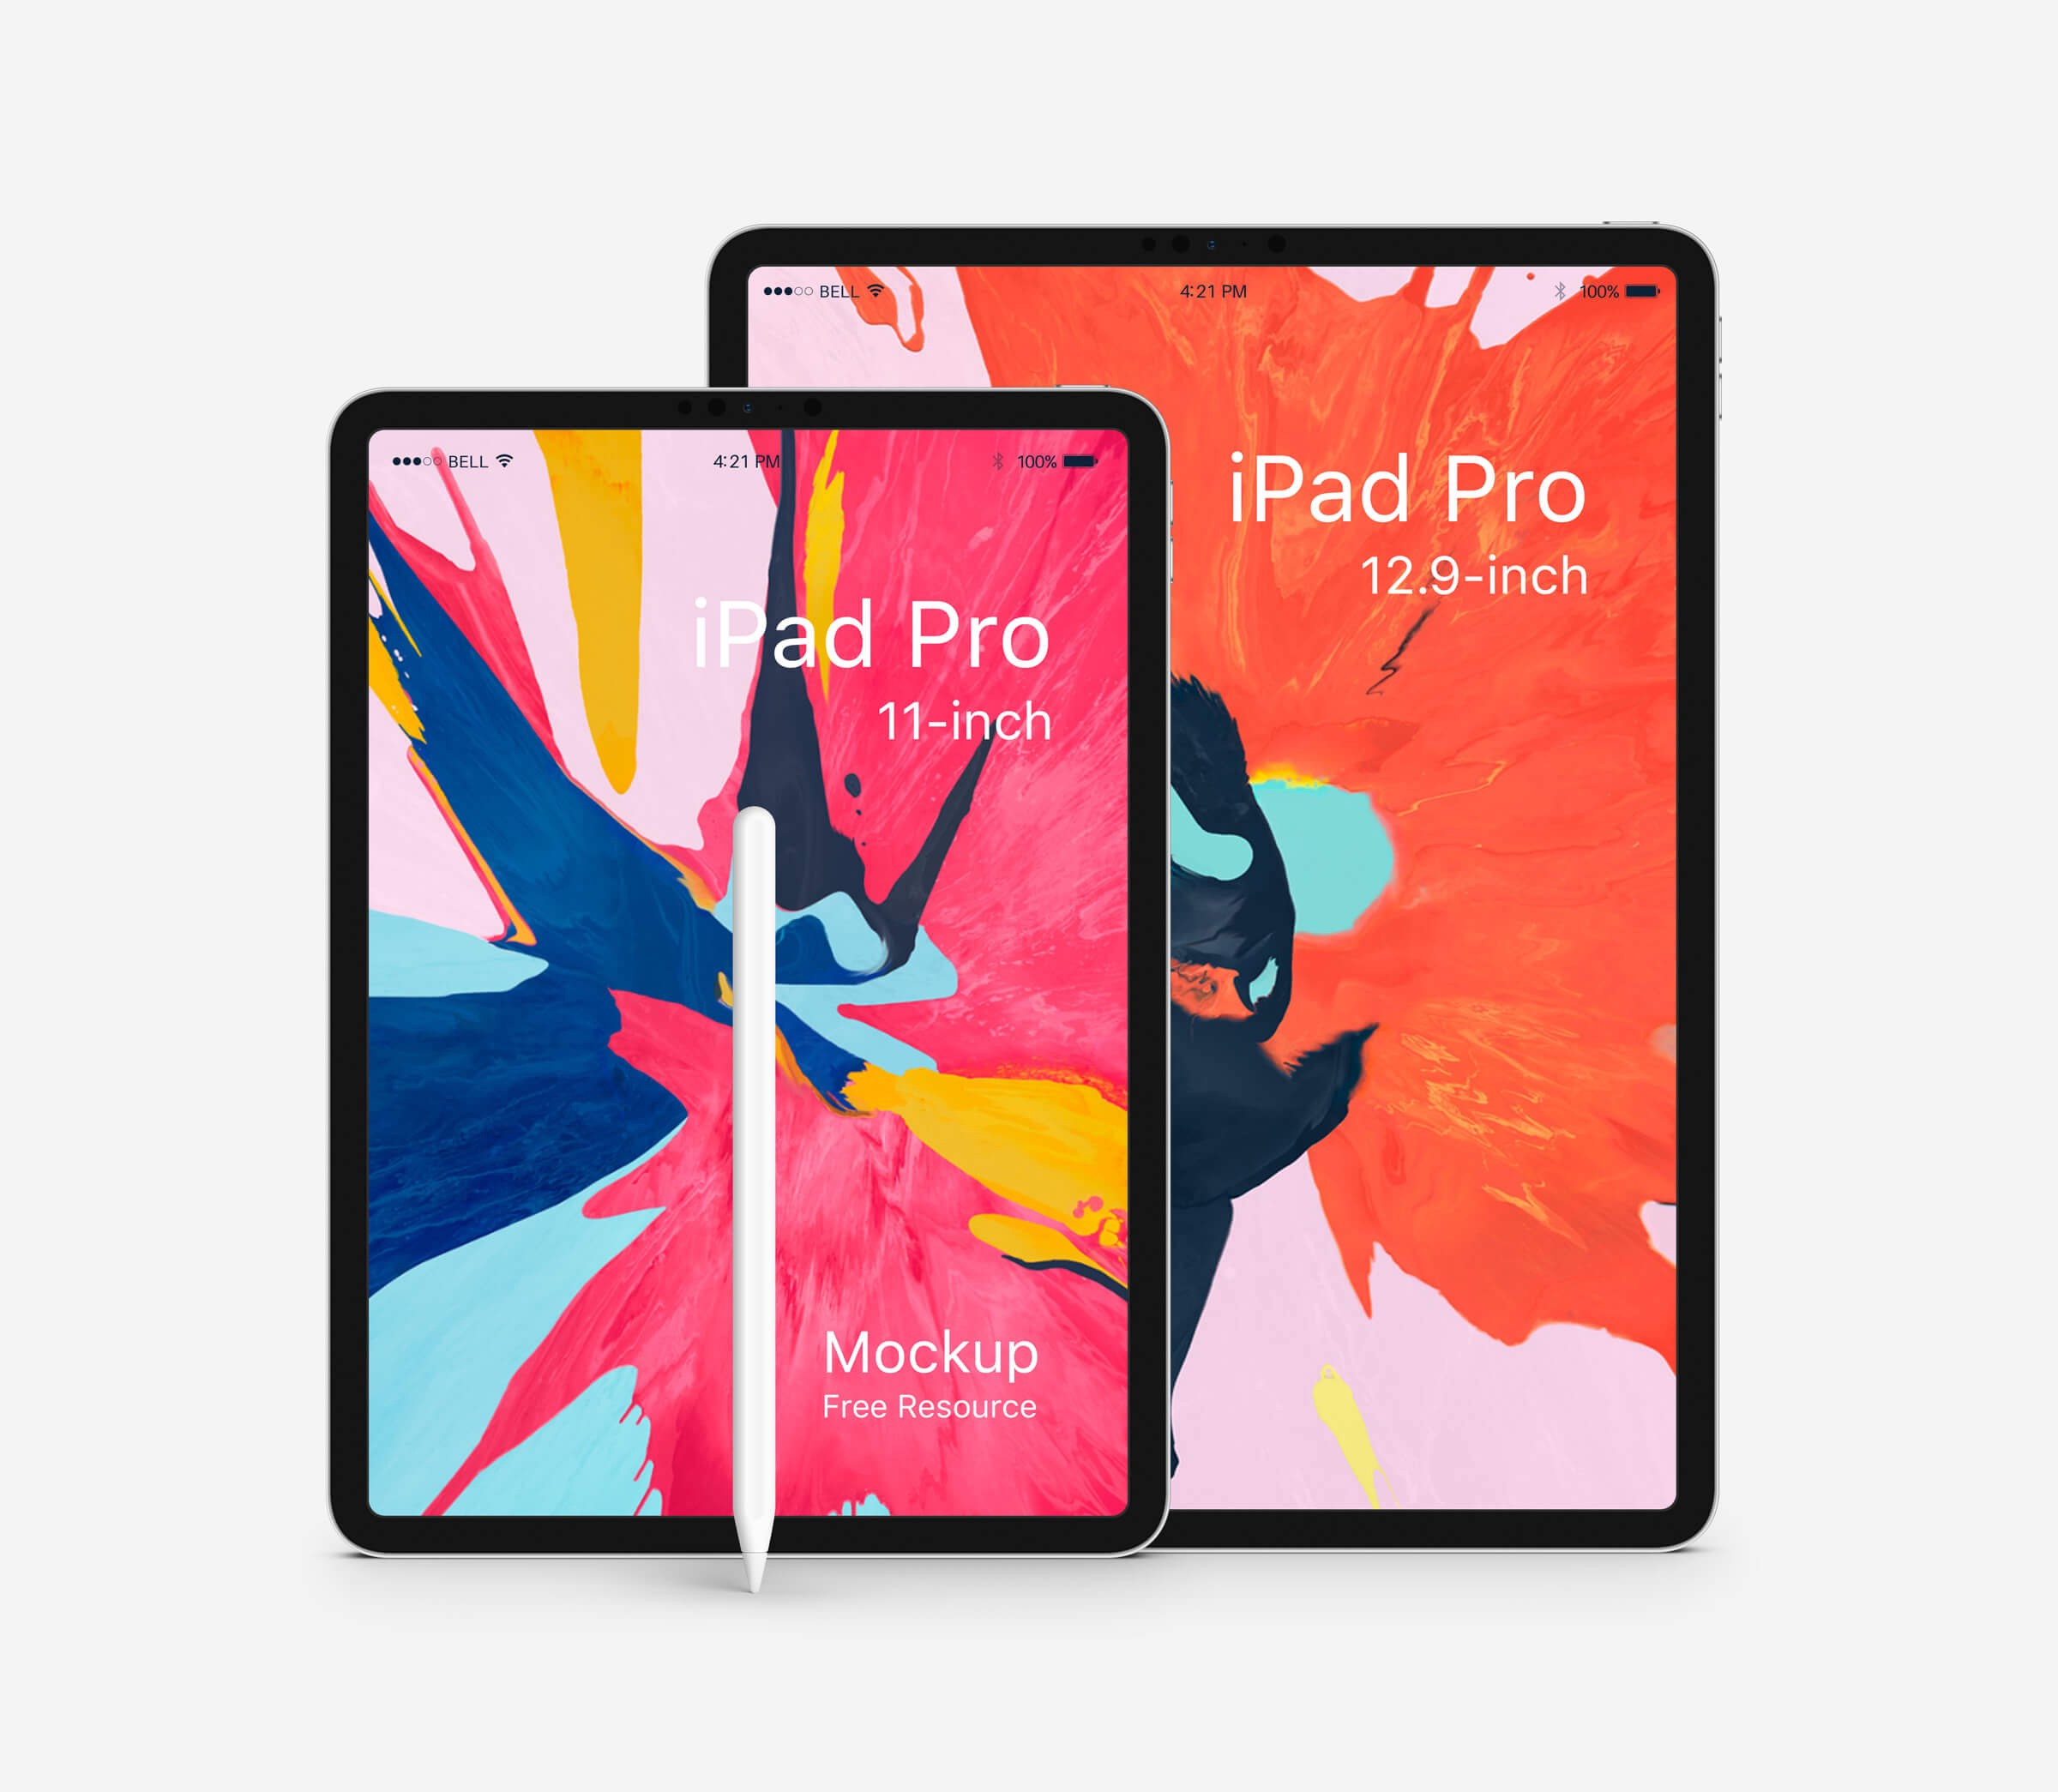 20 Best Free Ipad Mockups And Templates Psd Sketch In 2019 By Trista Liu Prototypr